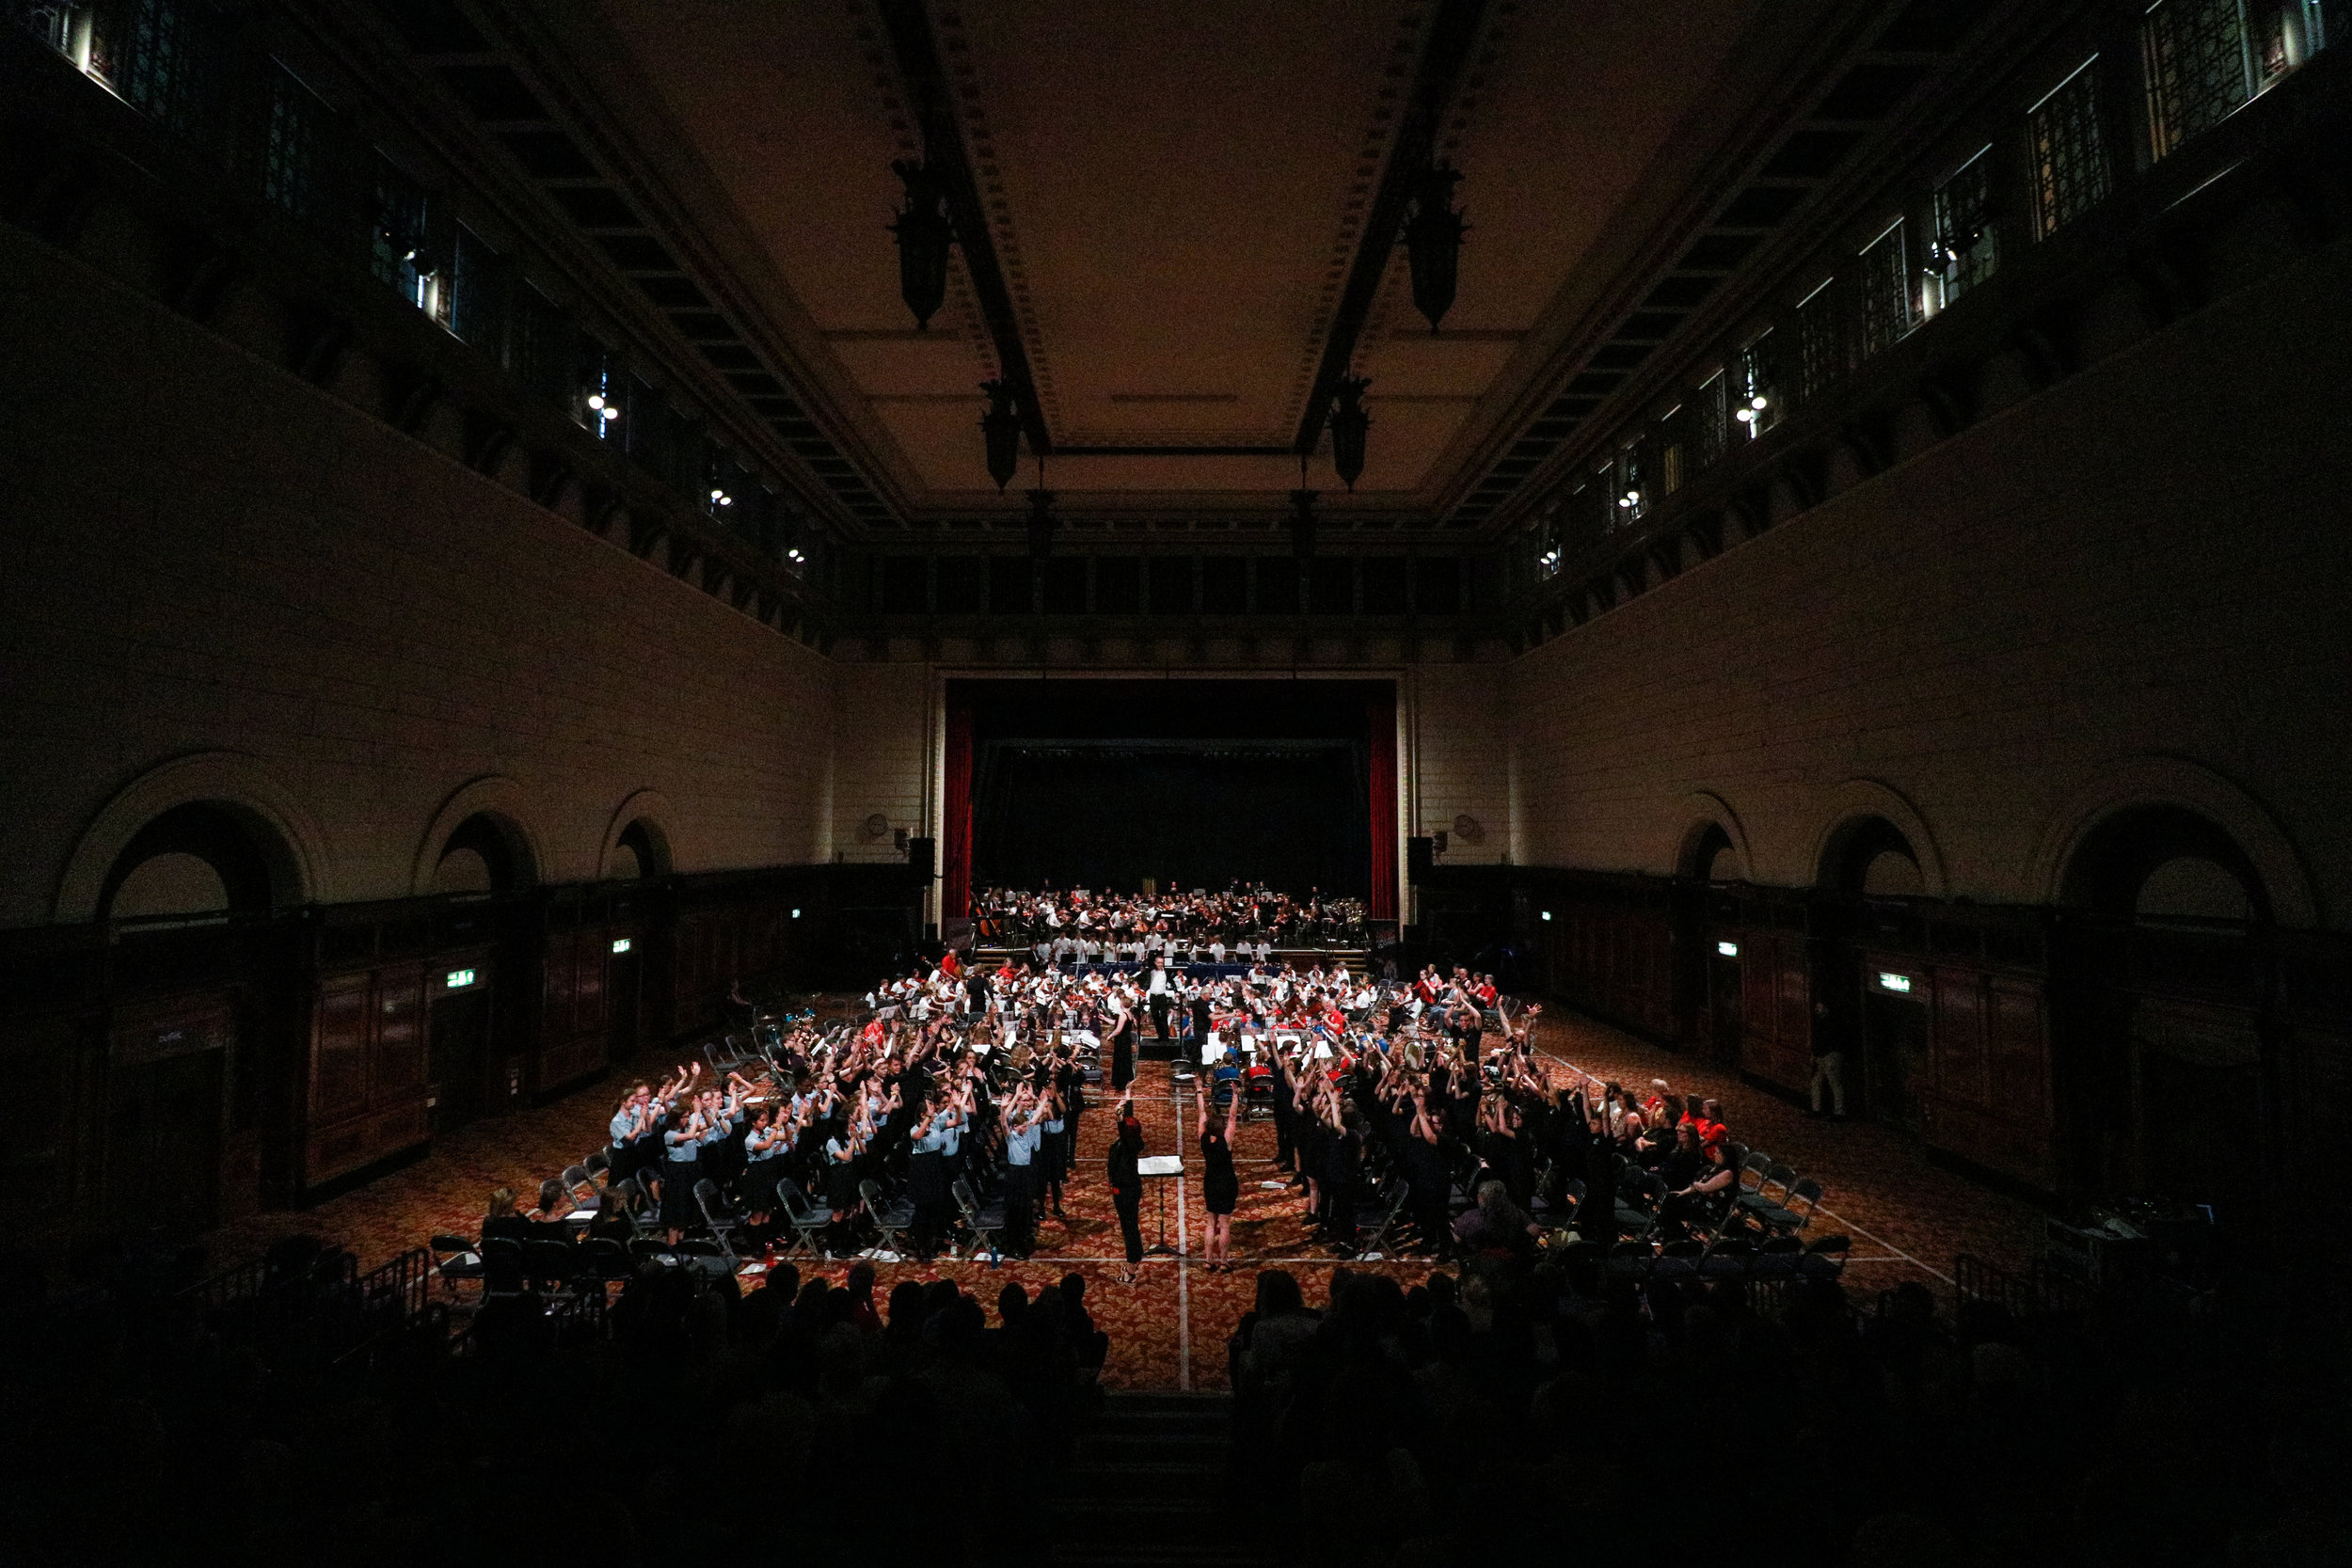 350 Young Musicians Perform Symphony 125 at Southampton Guildhall